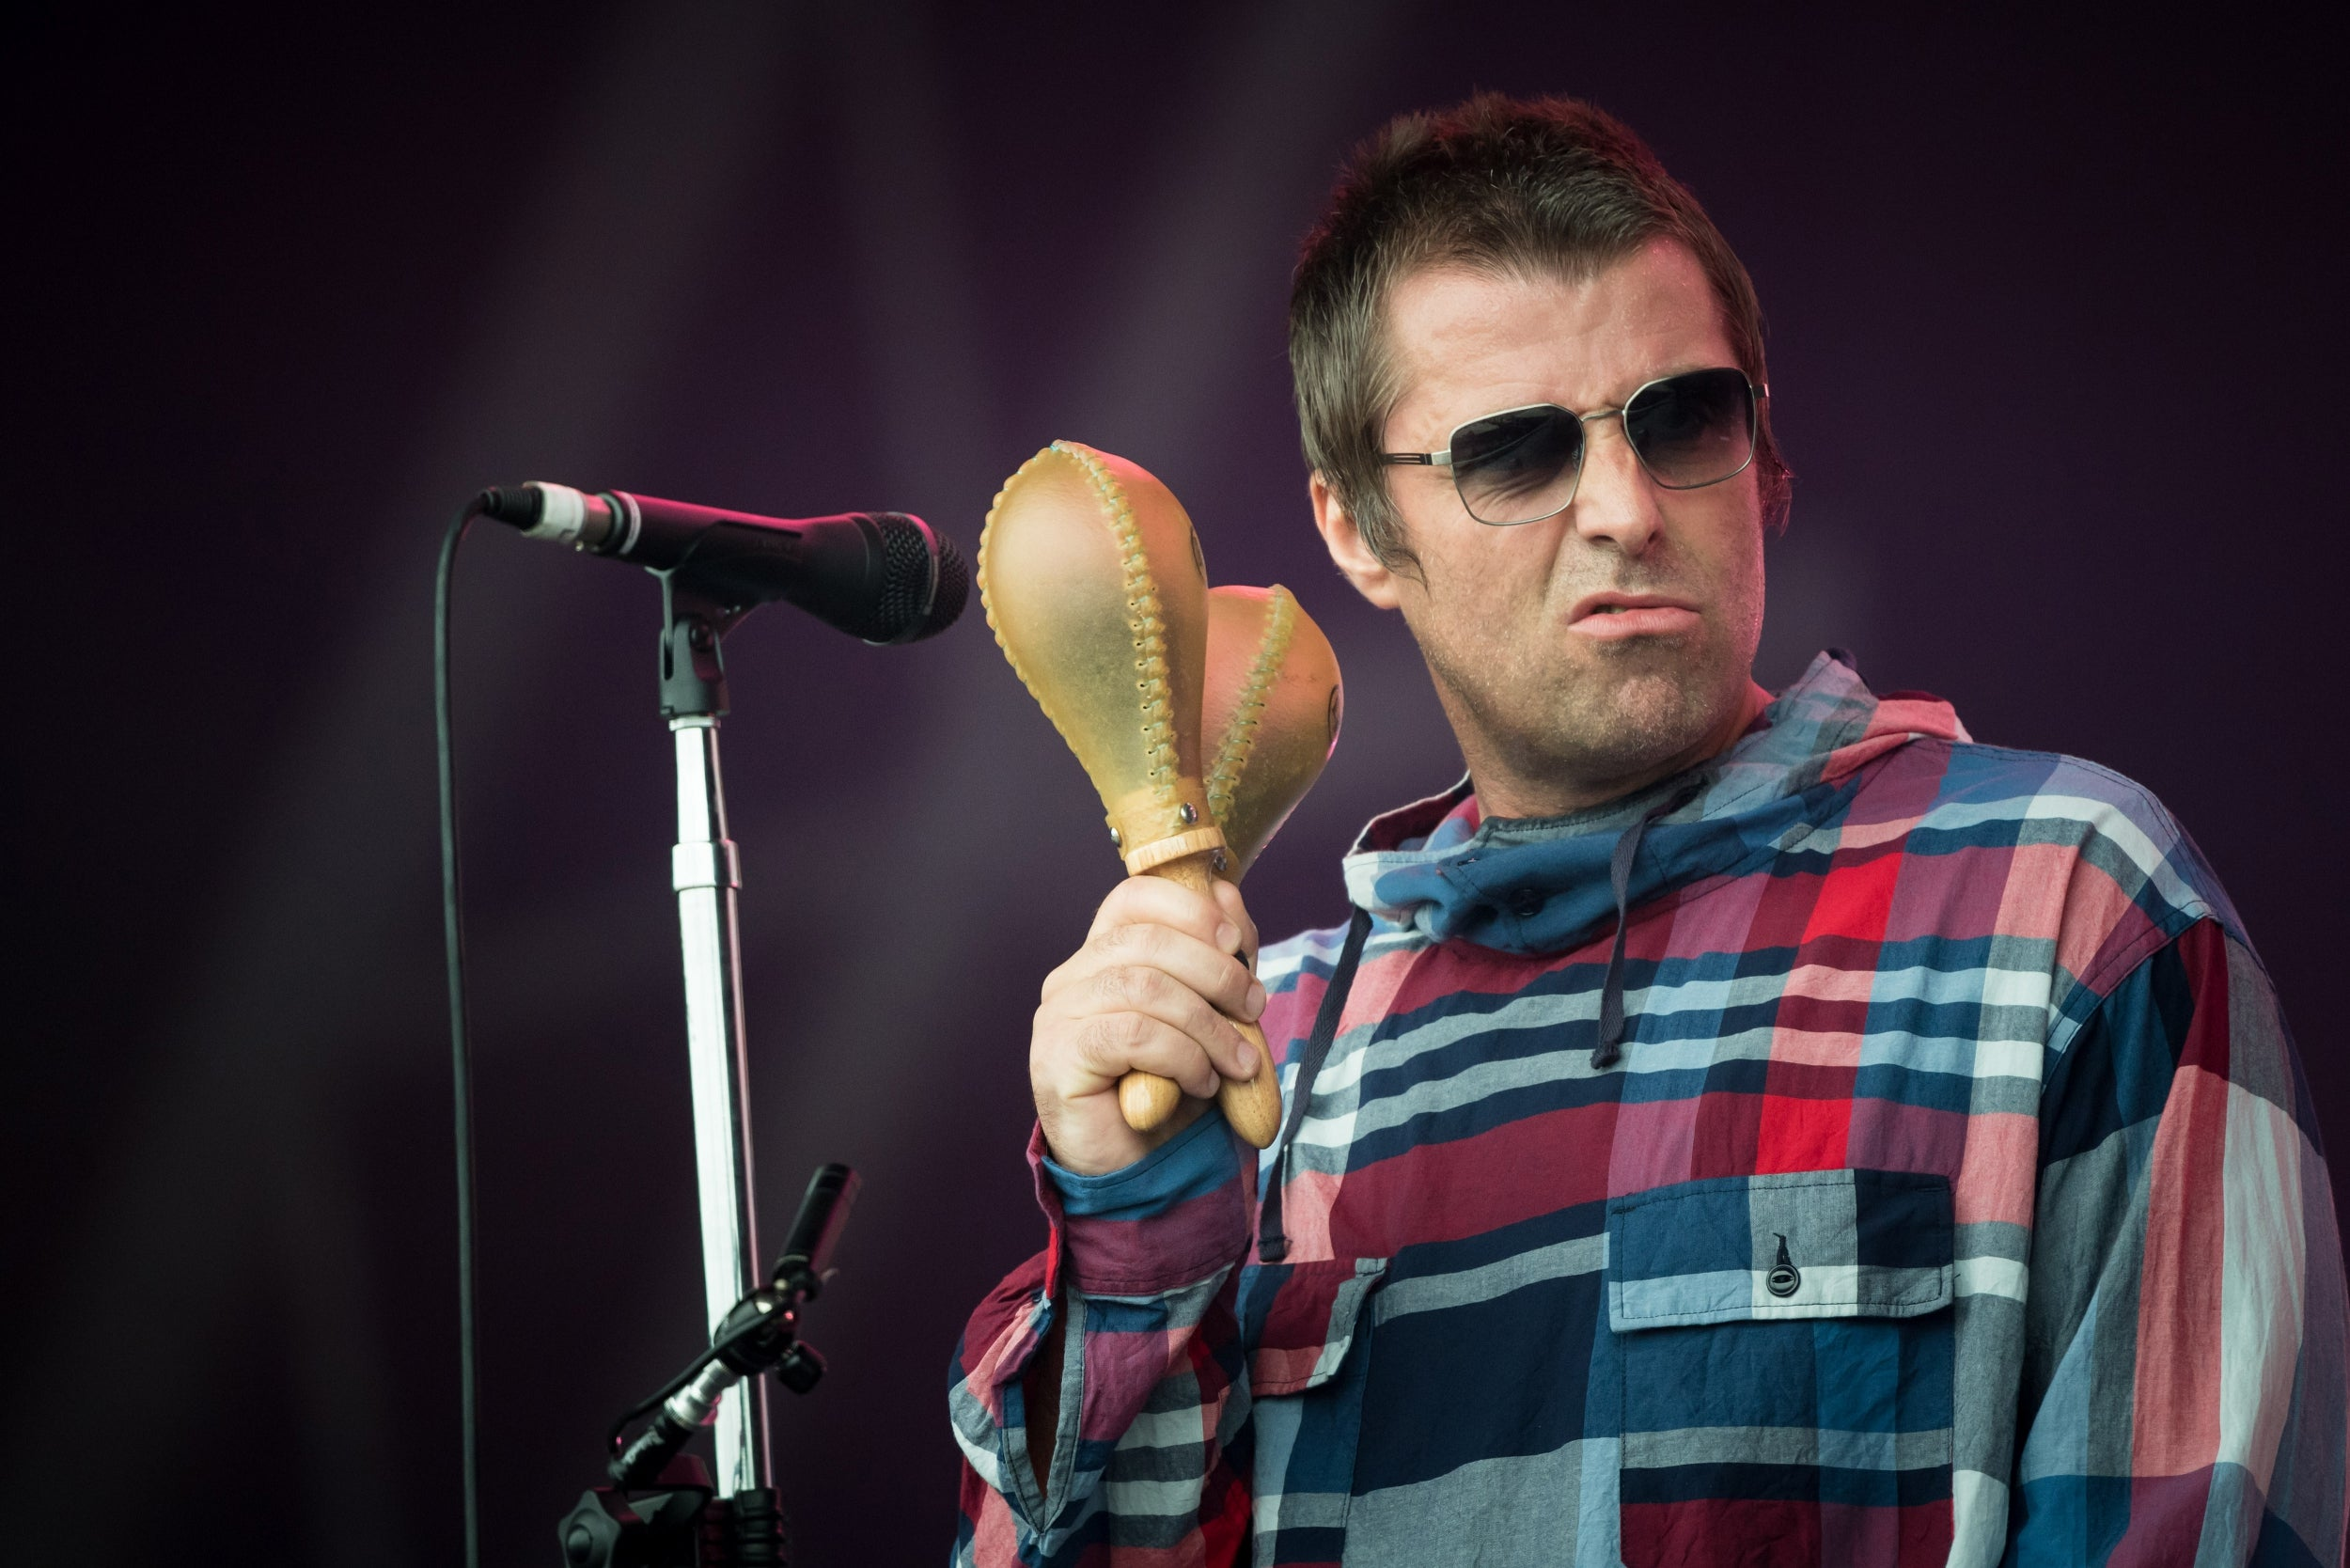 The Glastonbury Alex hype is proof of how the media and the